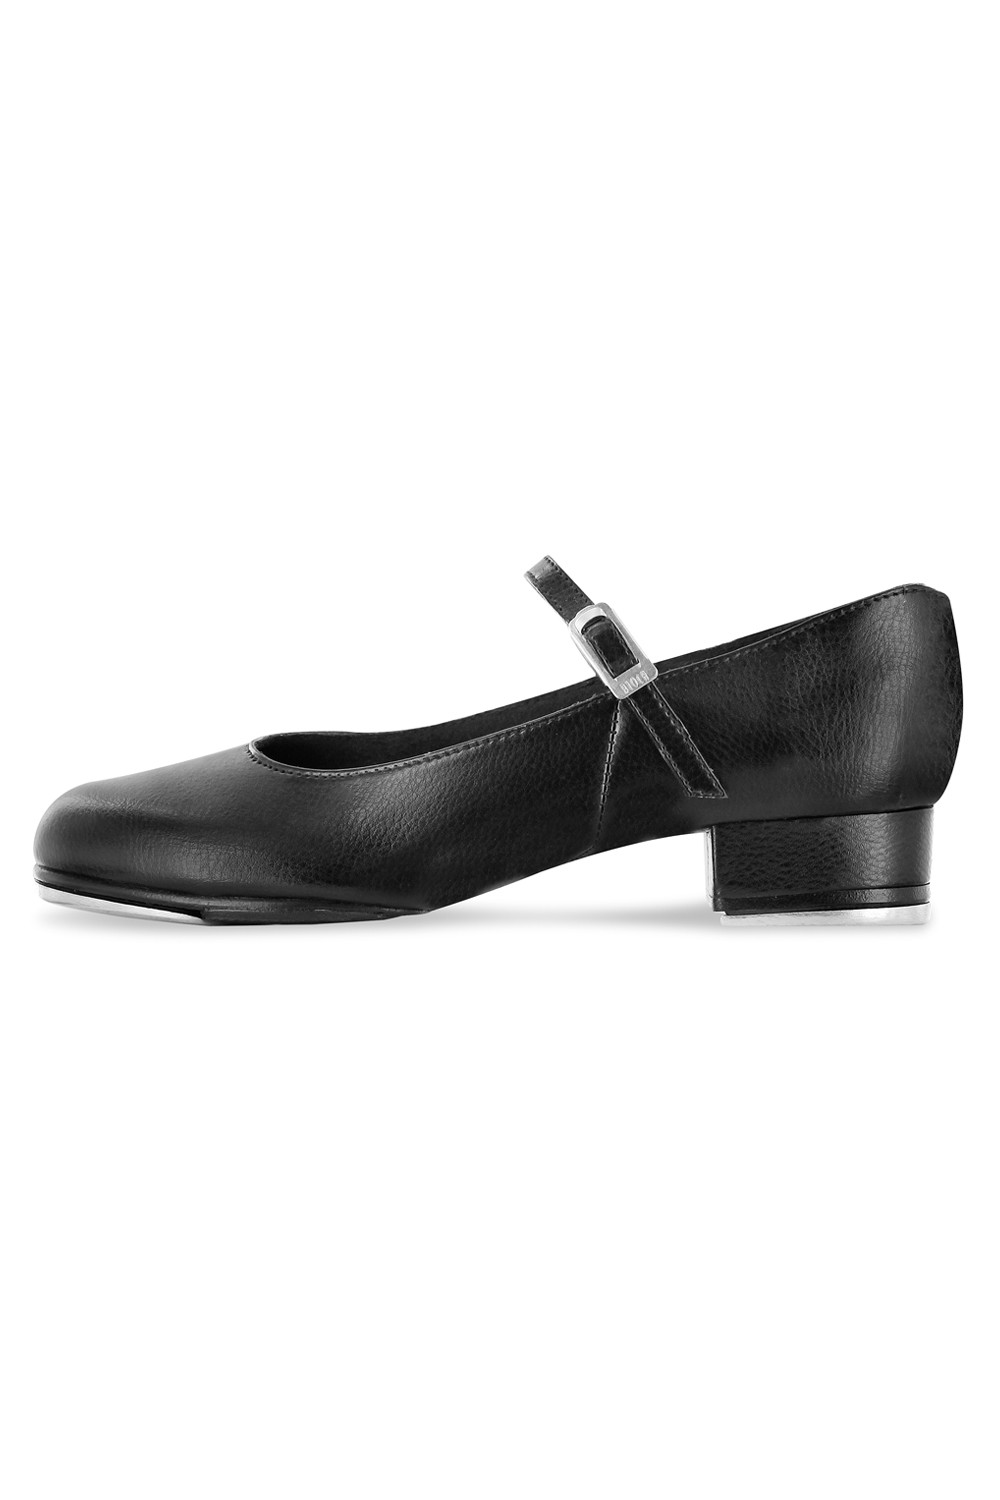 Kelly Tap Shoes Women's Tap Shoes